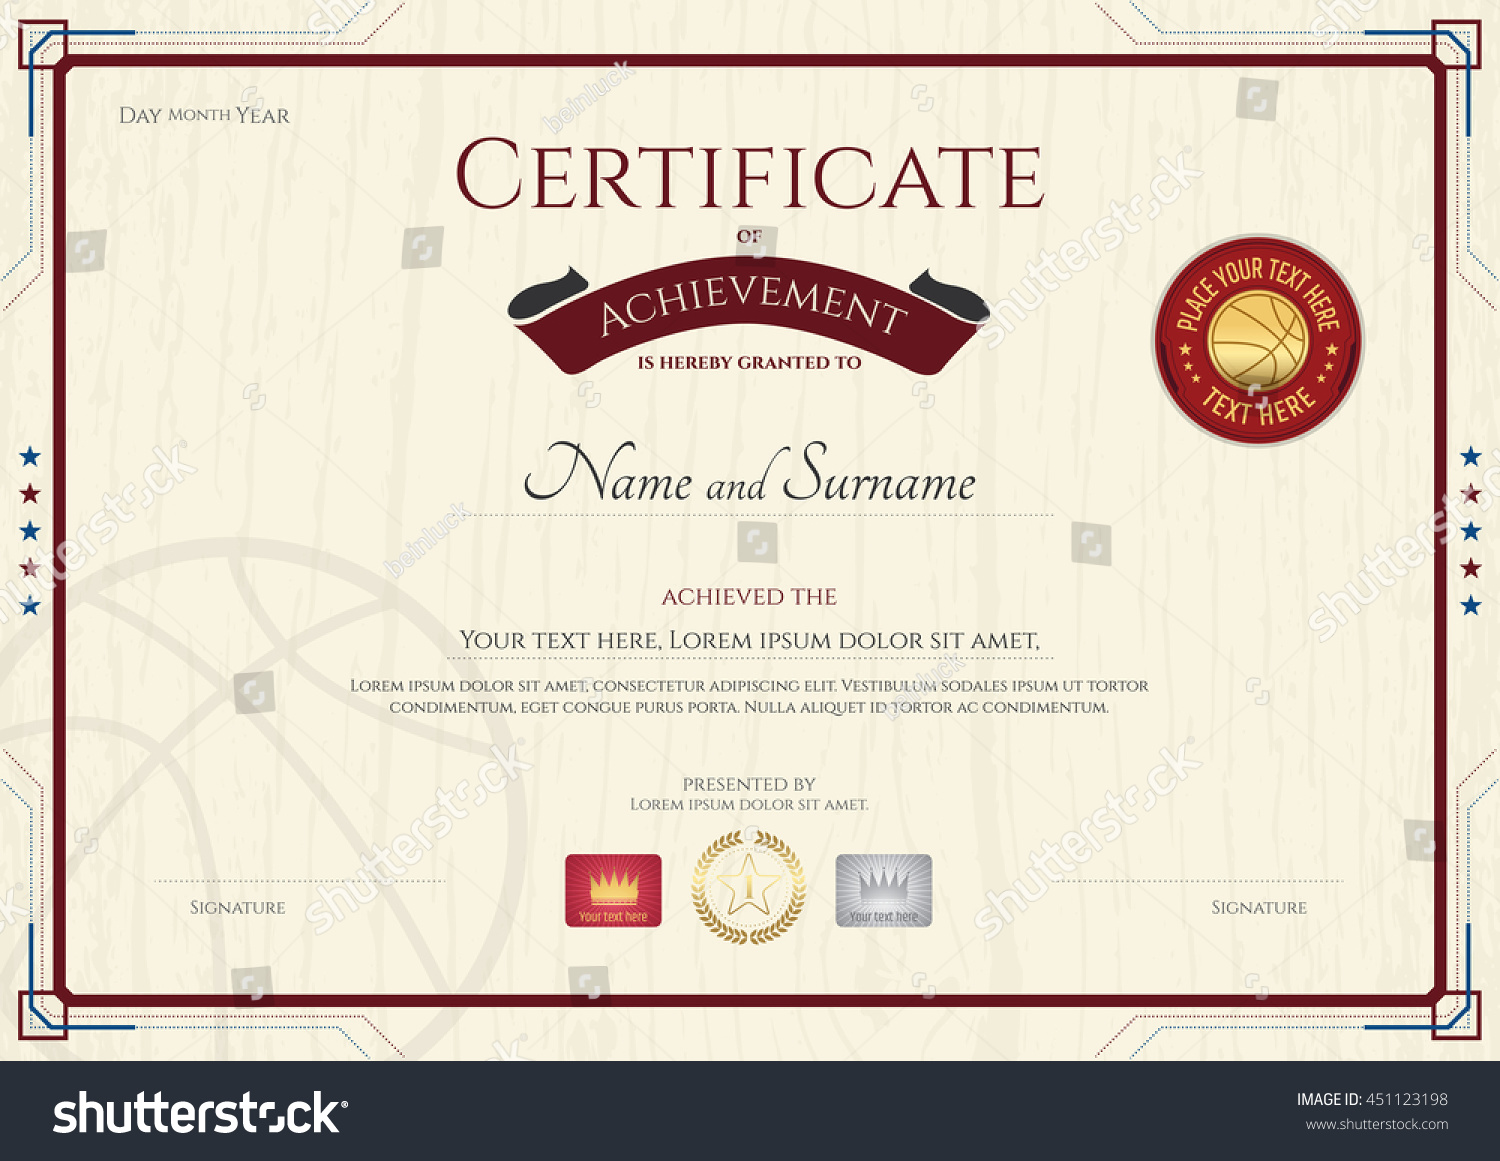 Certificate achievement template wooden texture background stock certificate of achievement template with wooden texture background in basketball sport theme yelopaper Choice Image